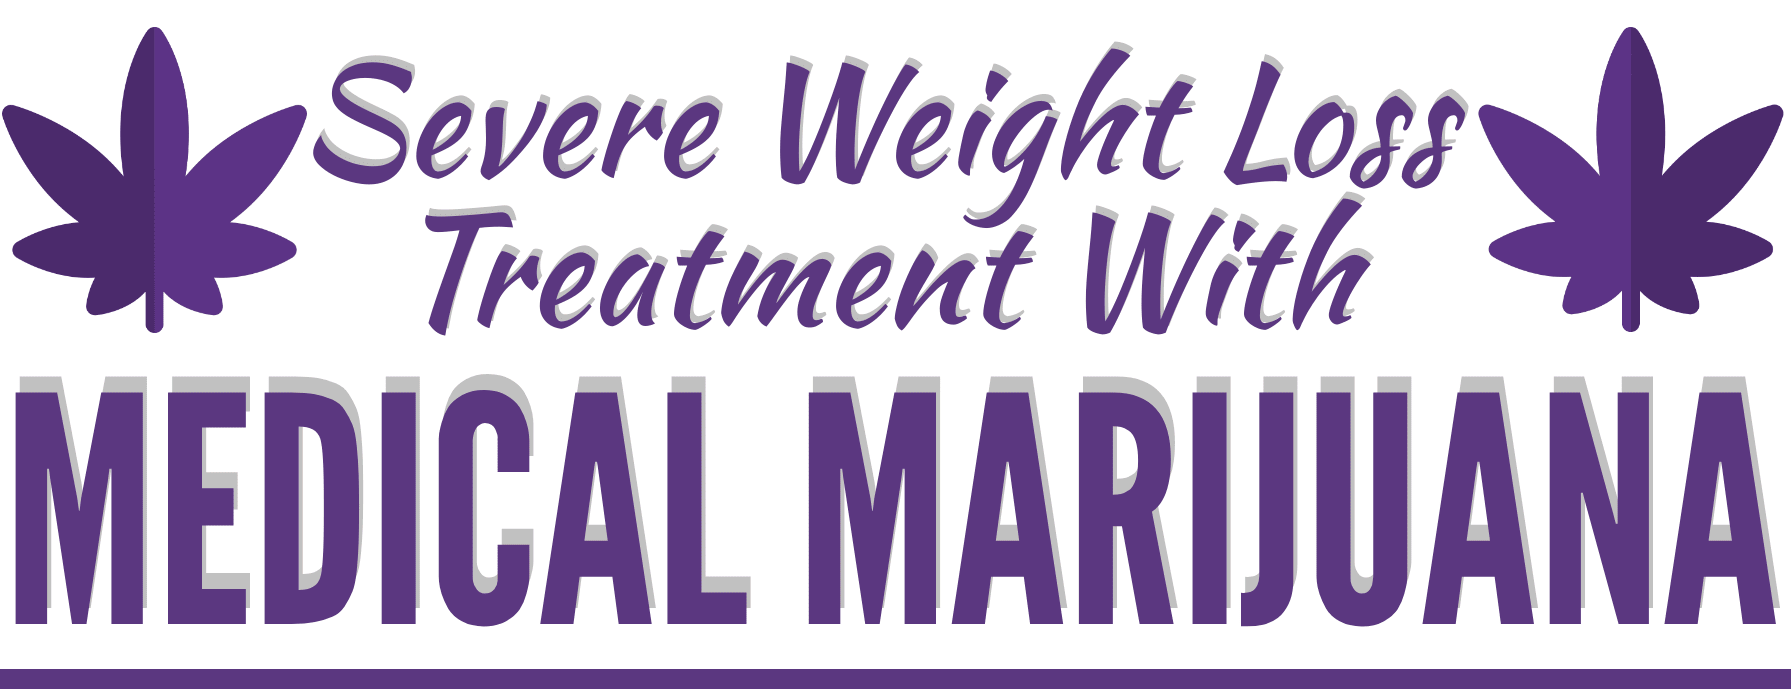 Severe Weight Loss Treatment With Medical Marijuana